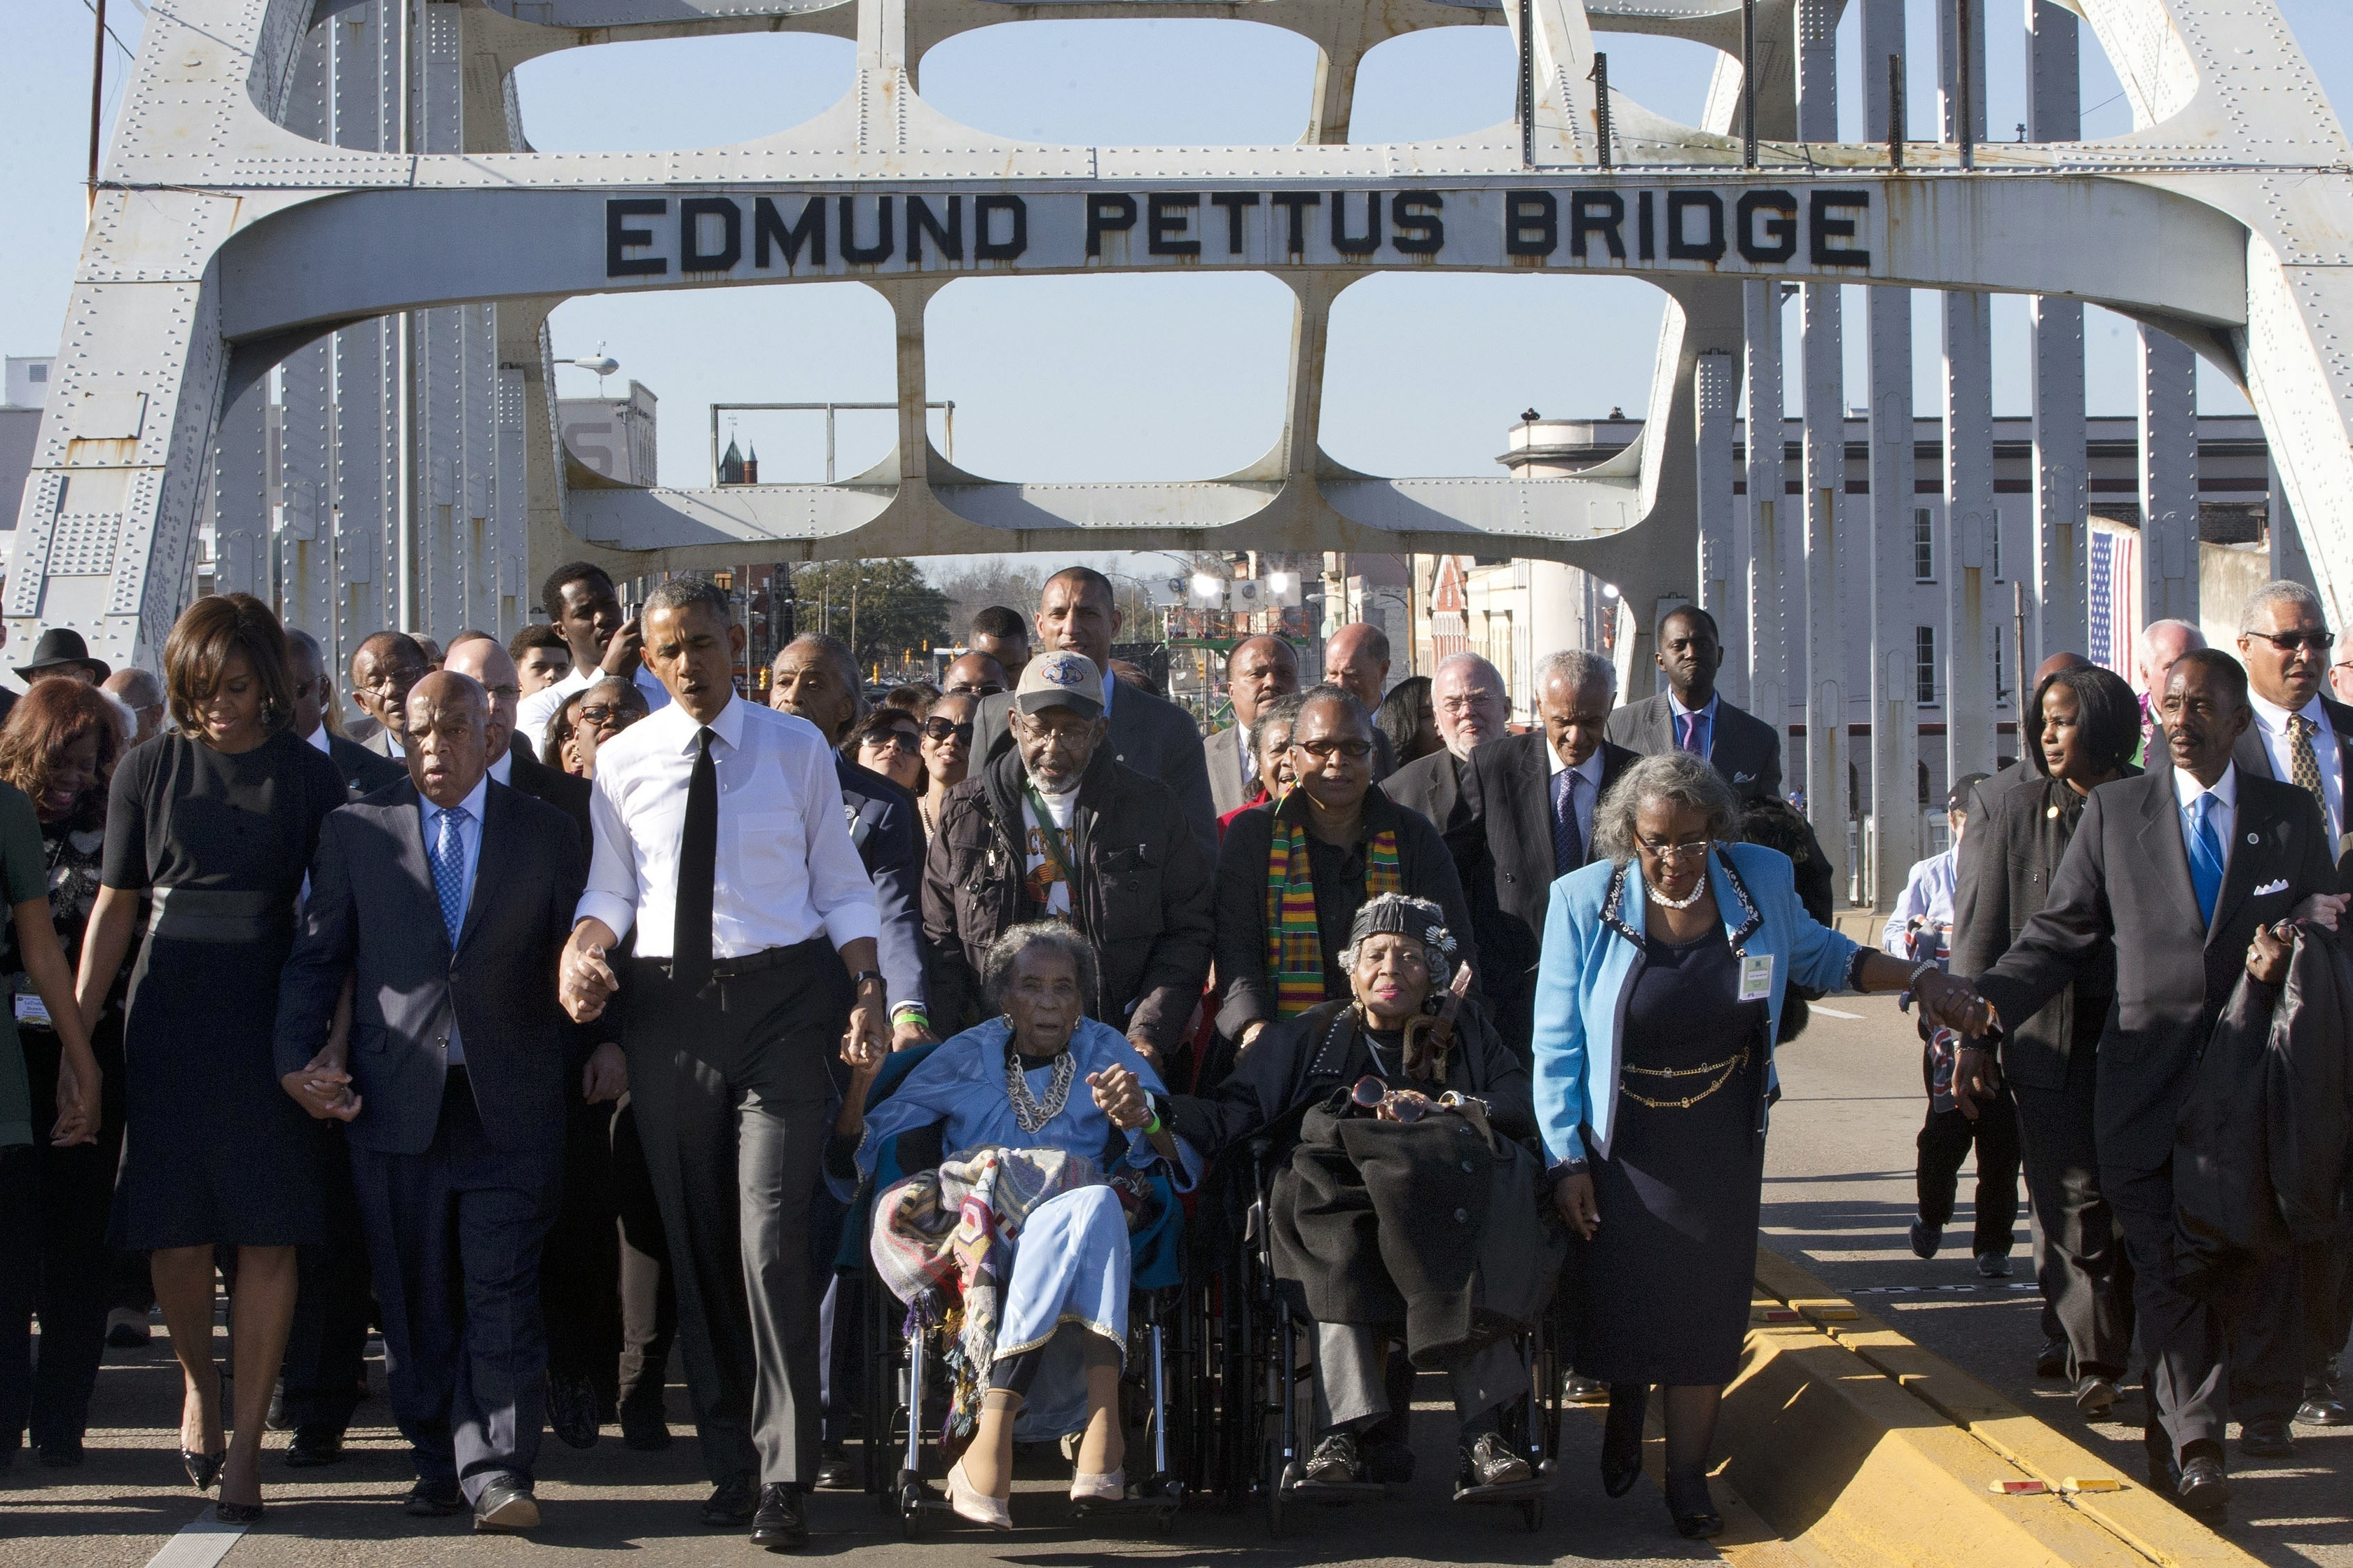 In this March 7, 2015, file photo, singing  We Shall Overcome,  President Barack Obama, third from left, walks holding hands with Amelia Boynton, who was beaten during  Bloody Sunday,  as they and the first family and others including Rep. John Lewis, D-Ga, left of Obama, walk across the Edmund Pettus Bridge in Selma, Ala., for the 50th anniversary of  Bloody Sunday,  a landmark event of the civil rights movement. Some residents in the landmark civil rights city of Selma, Ala., are among the critics of a bid to rename the historic bridge where voting rights marchers were beaten in 1965.